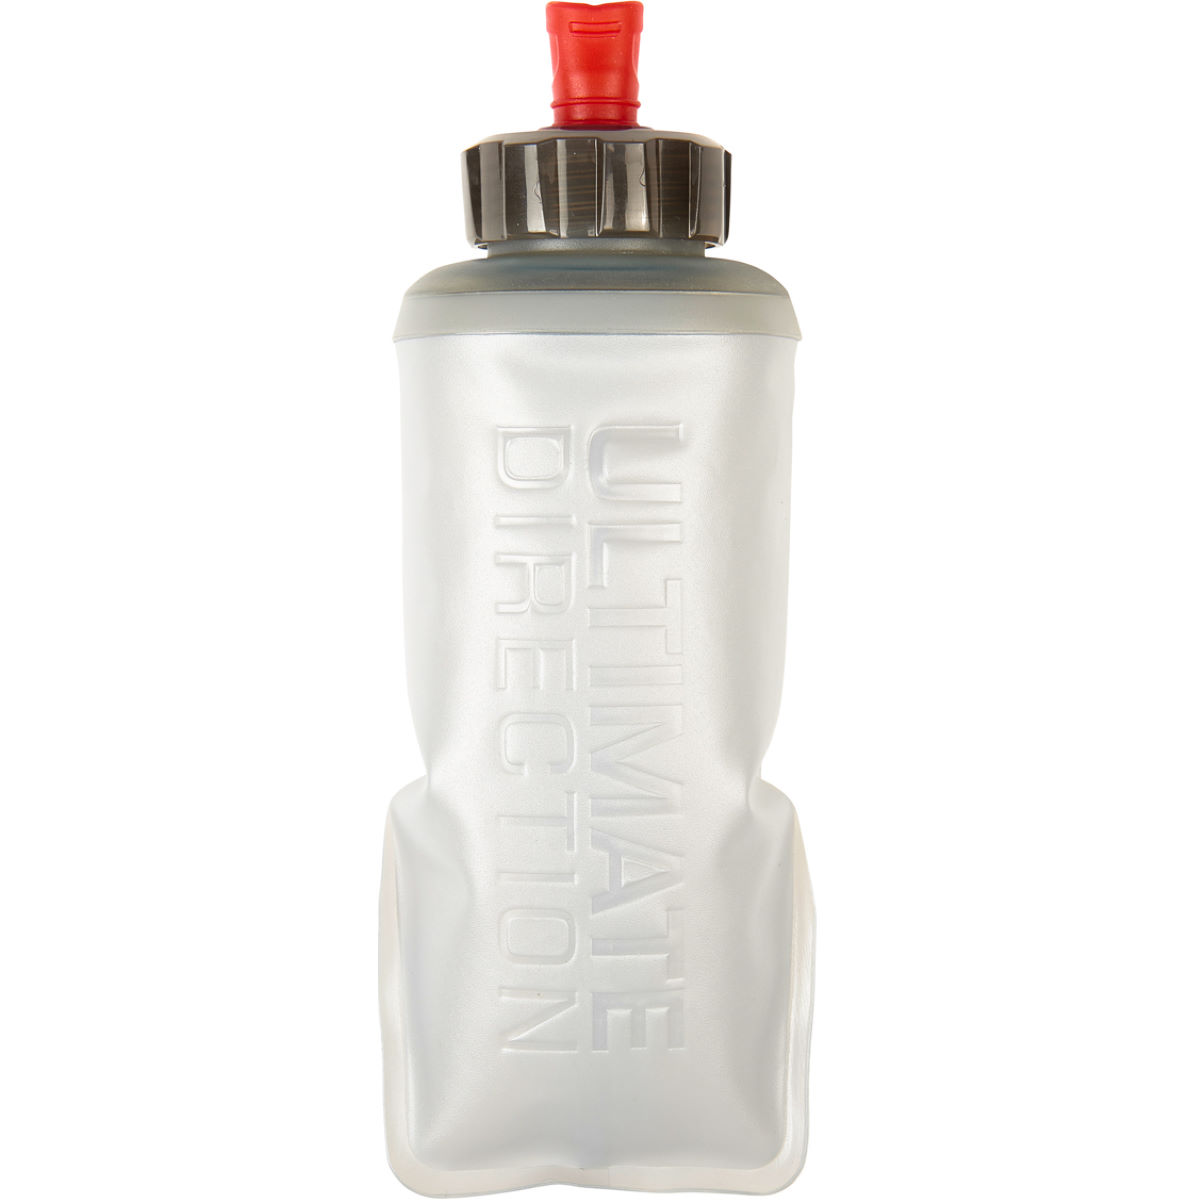 Ultimate Direction Body Bottle 150g - Bidones de agua